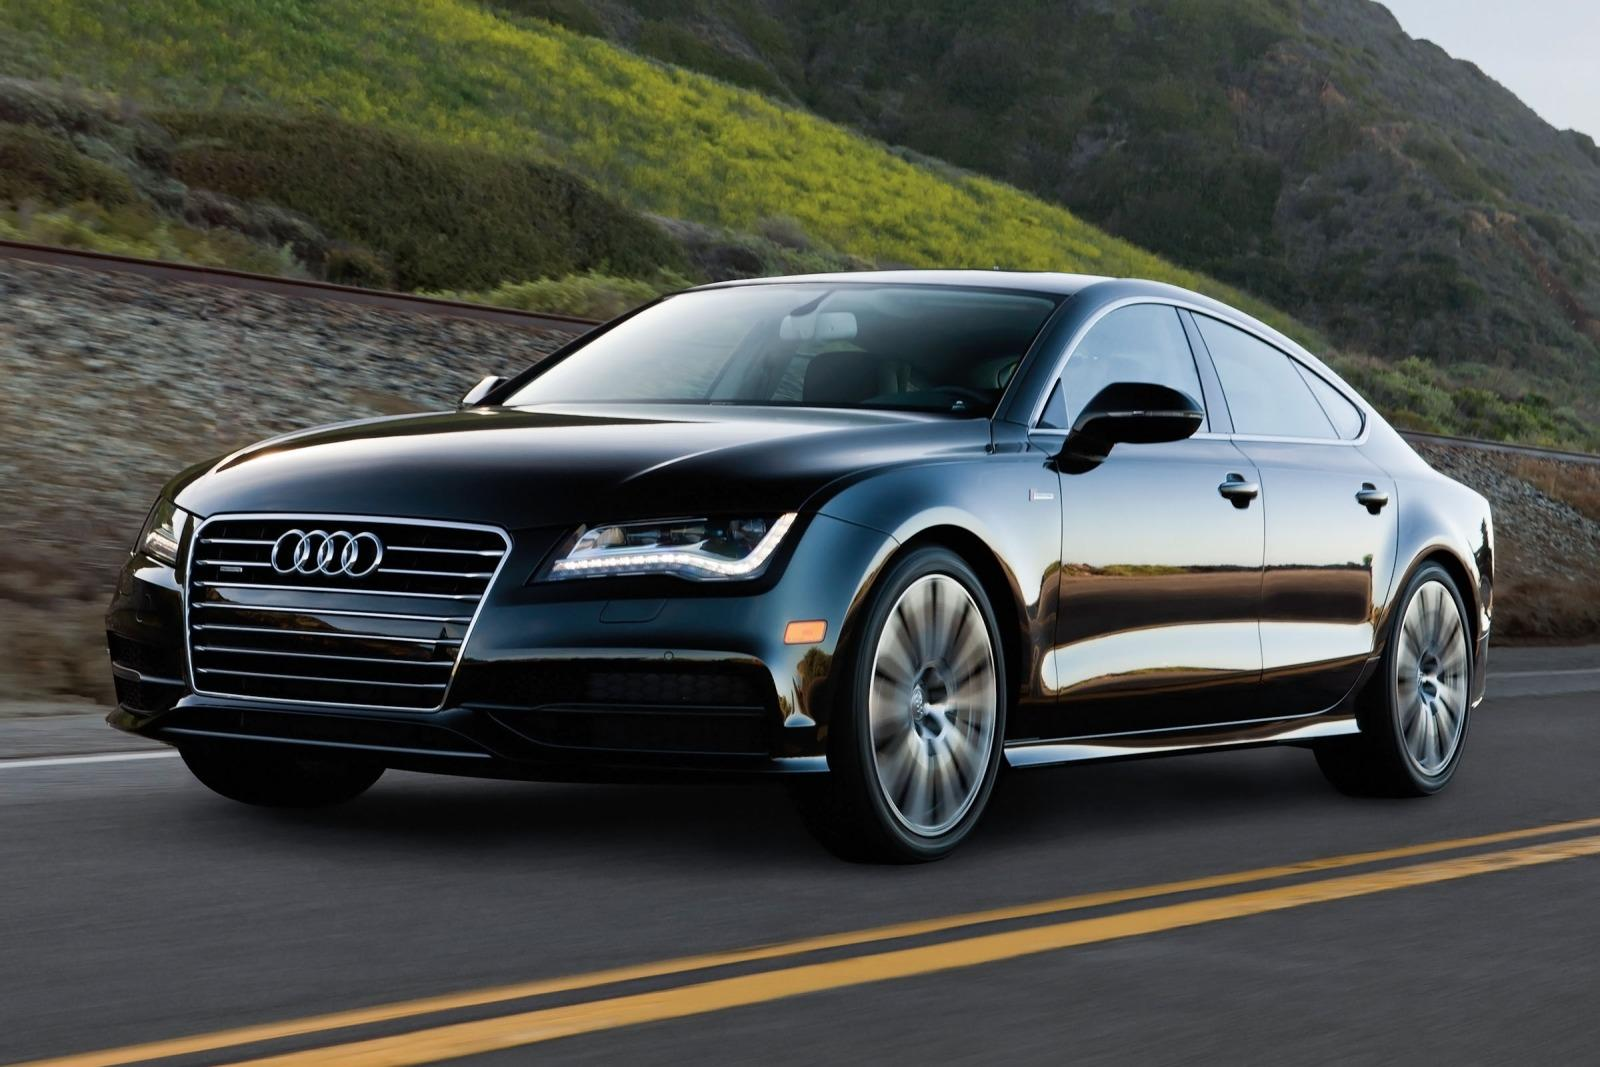 2012 audi a7 information and photos zombiedrive. Black Bedroom Furniture Sets. Home Design Ideas